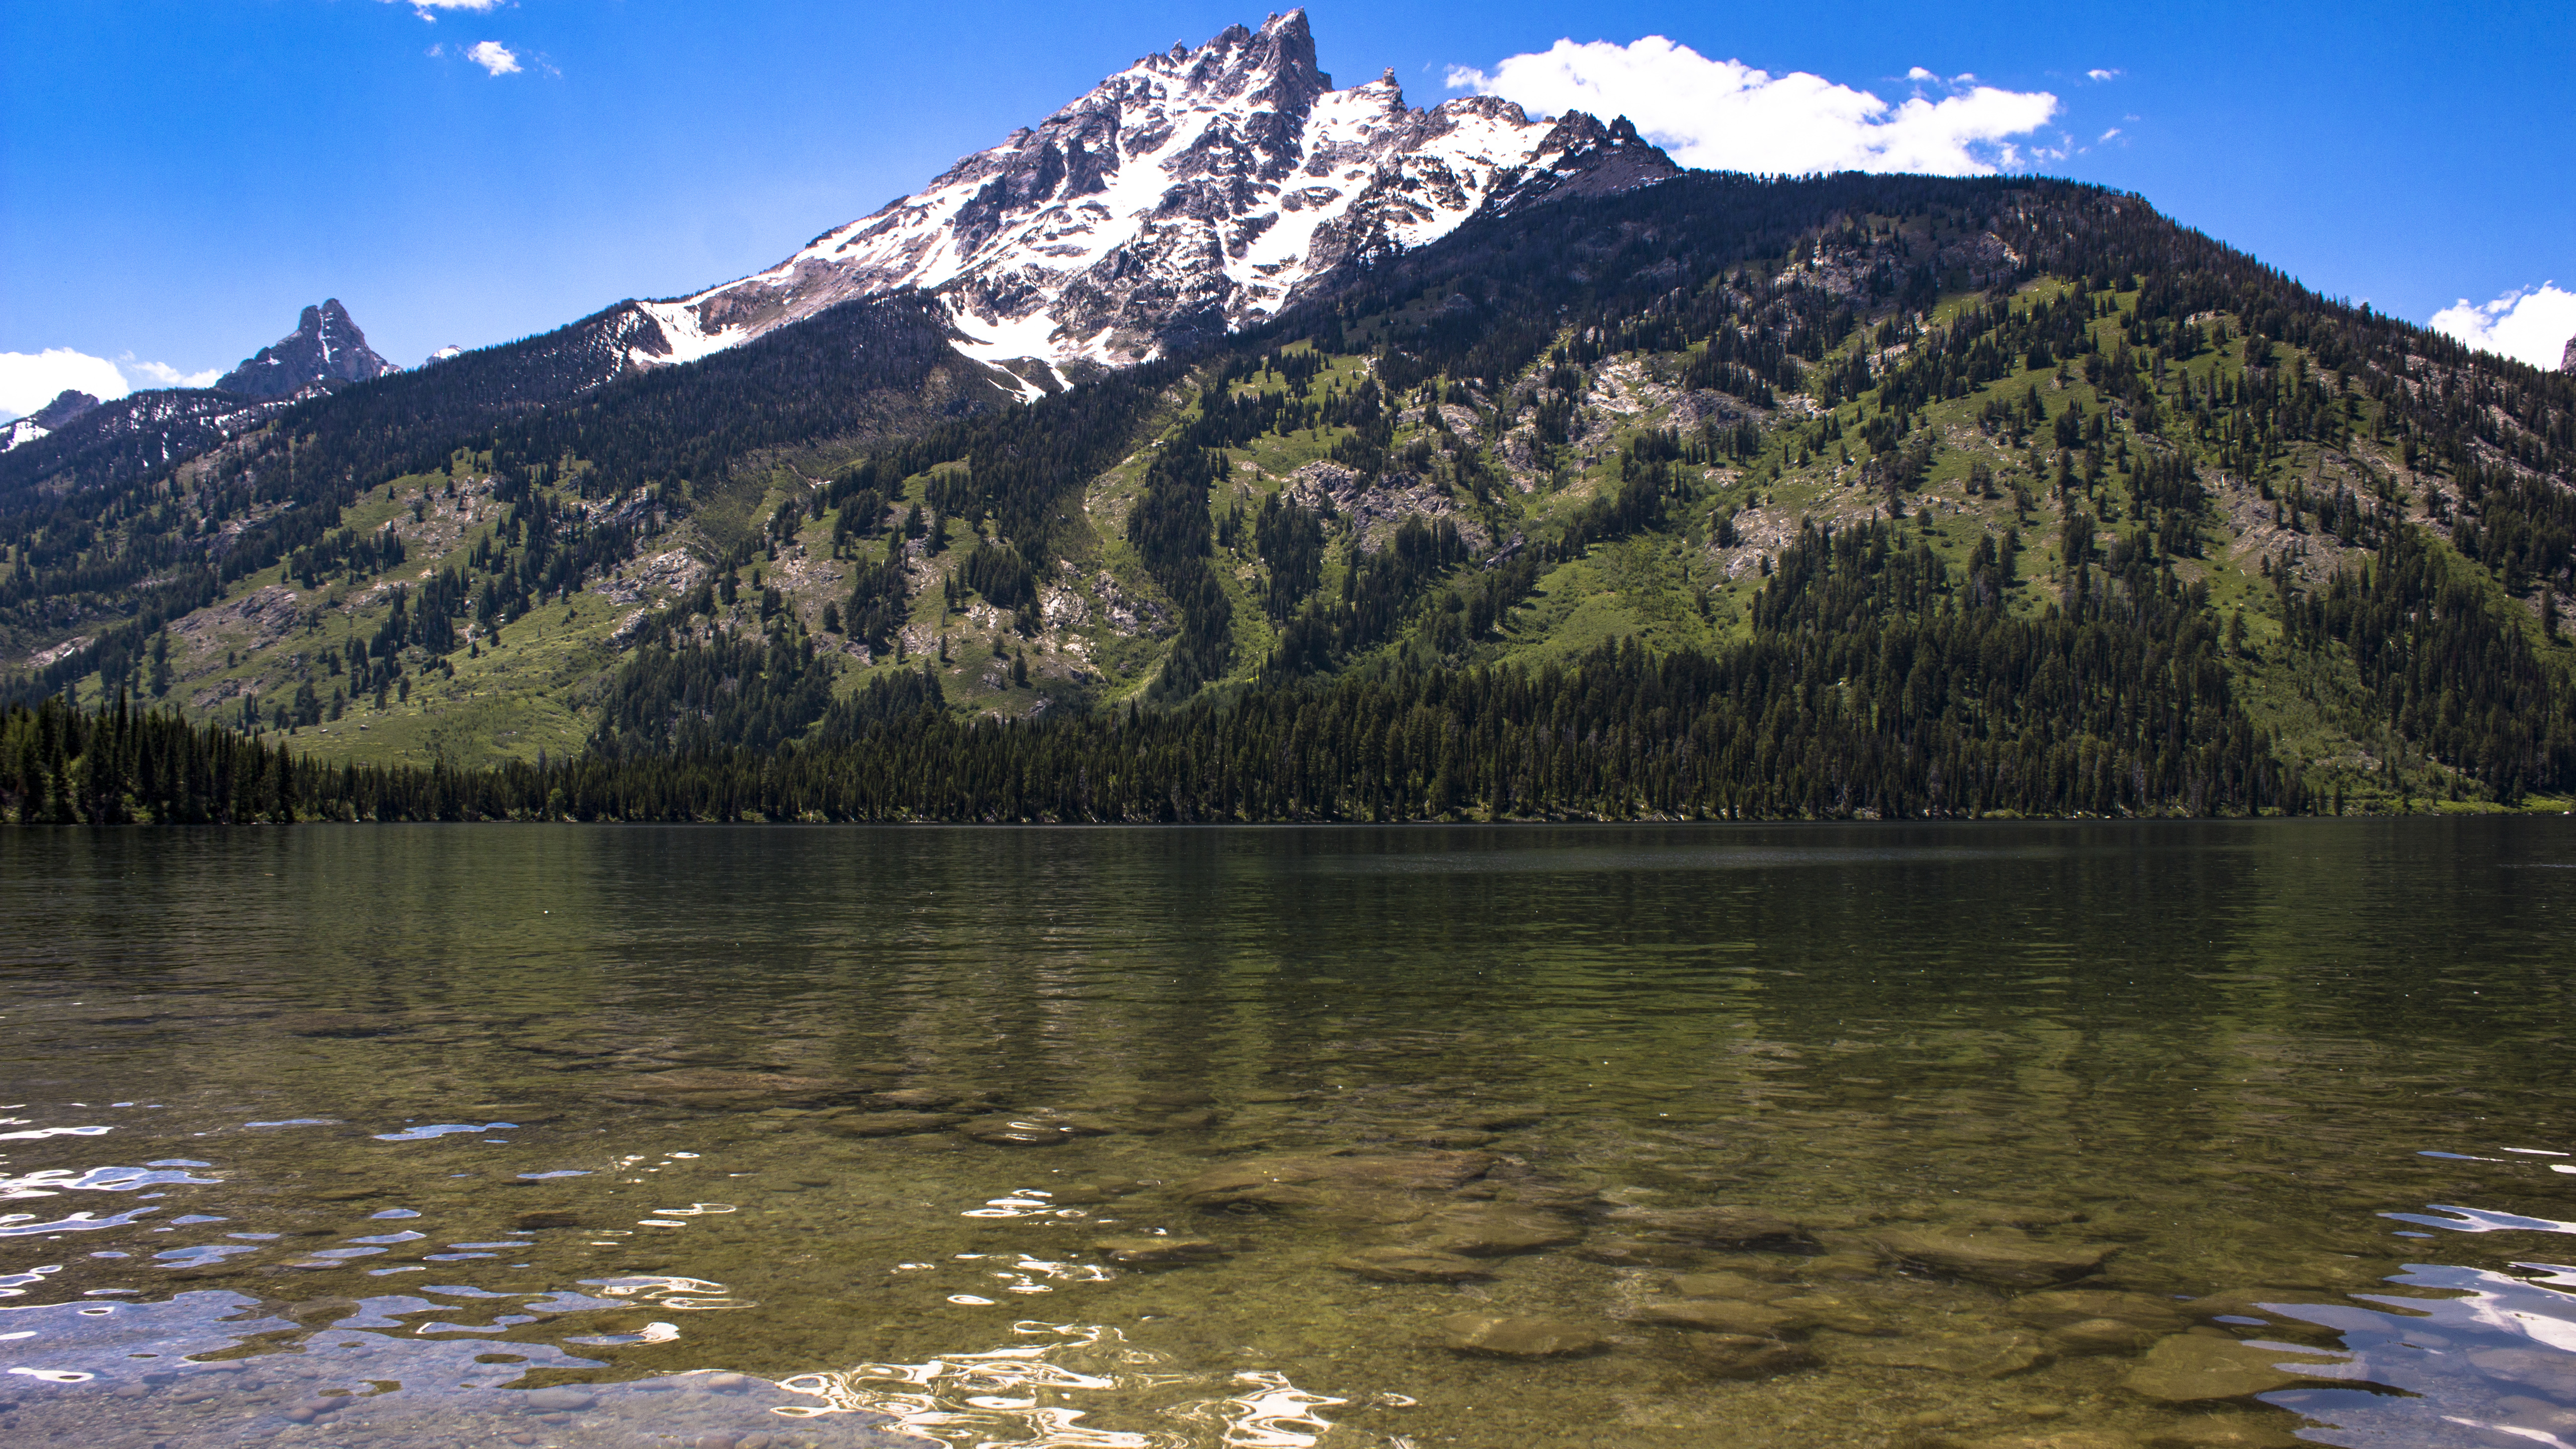 The grand tetons photo